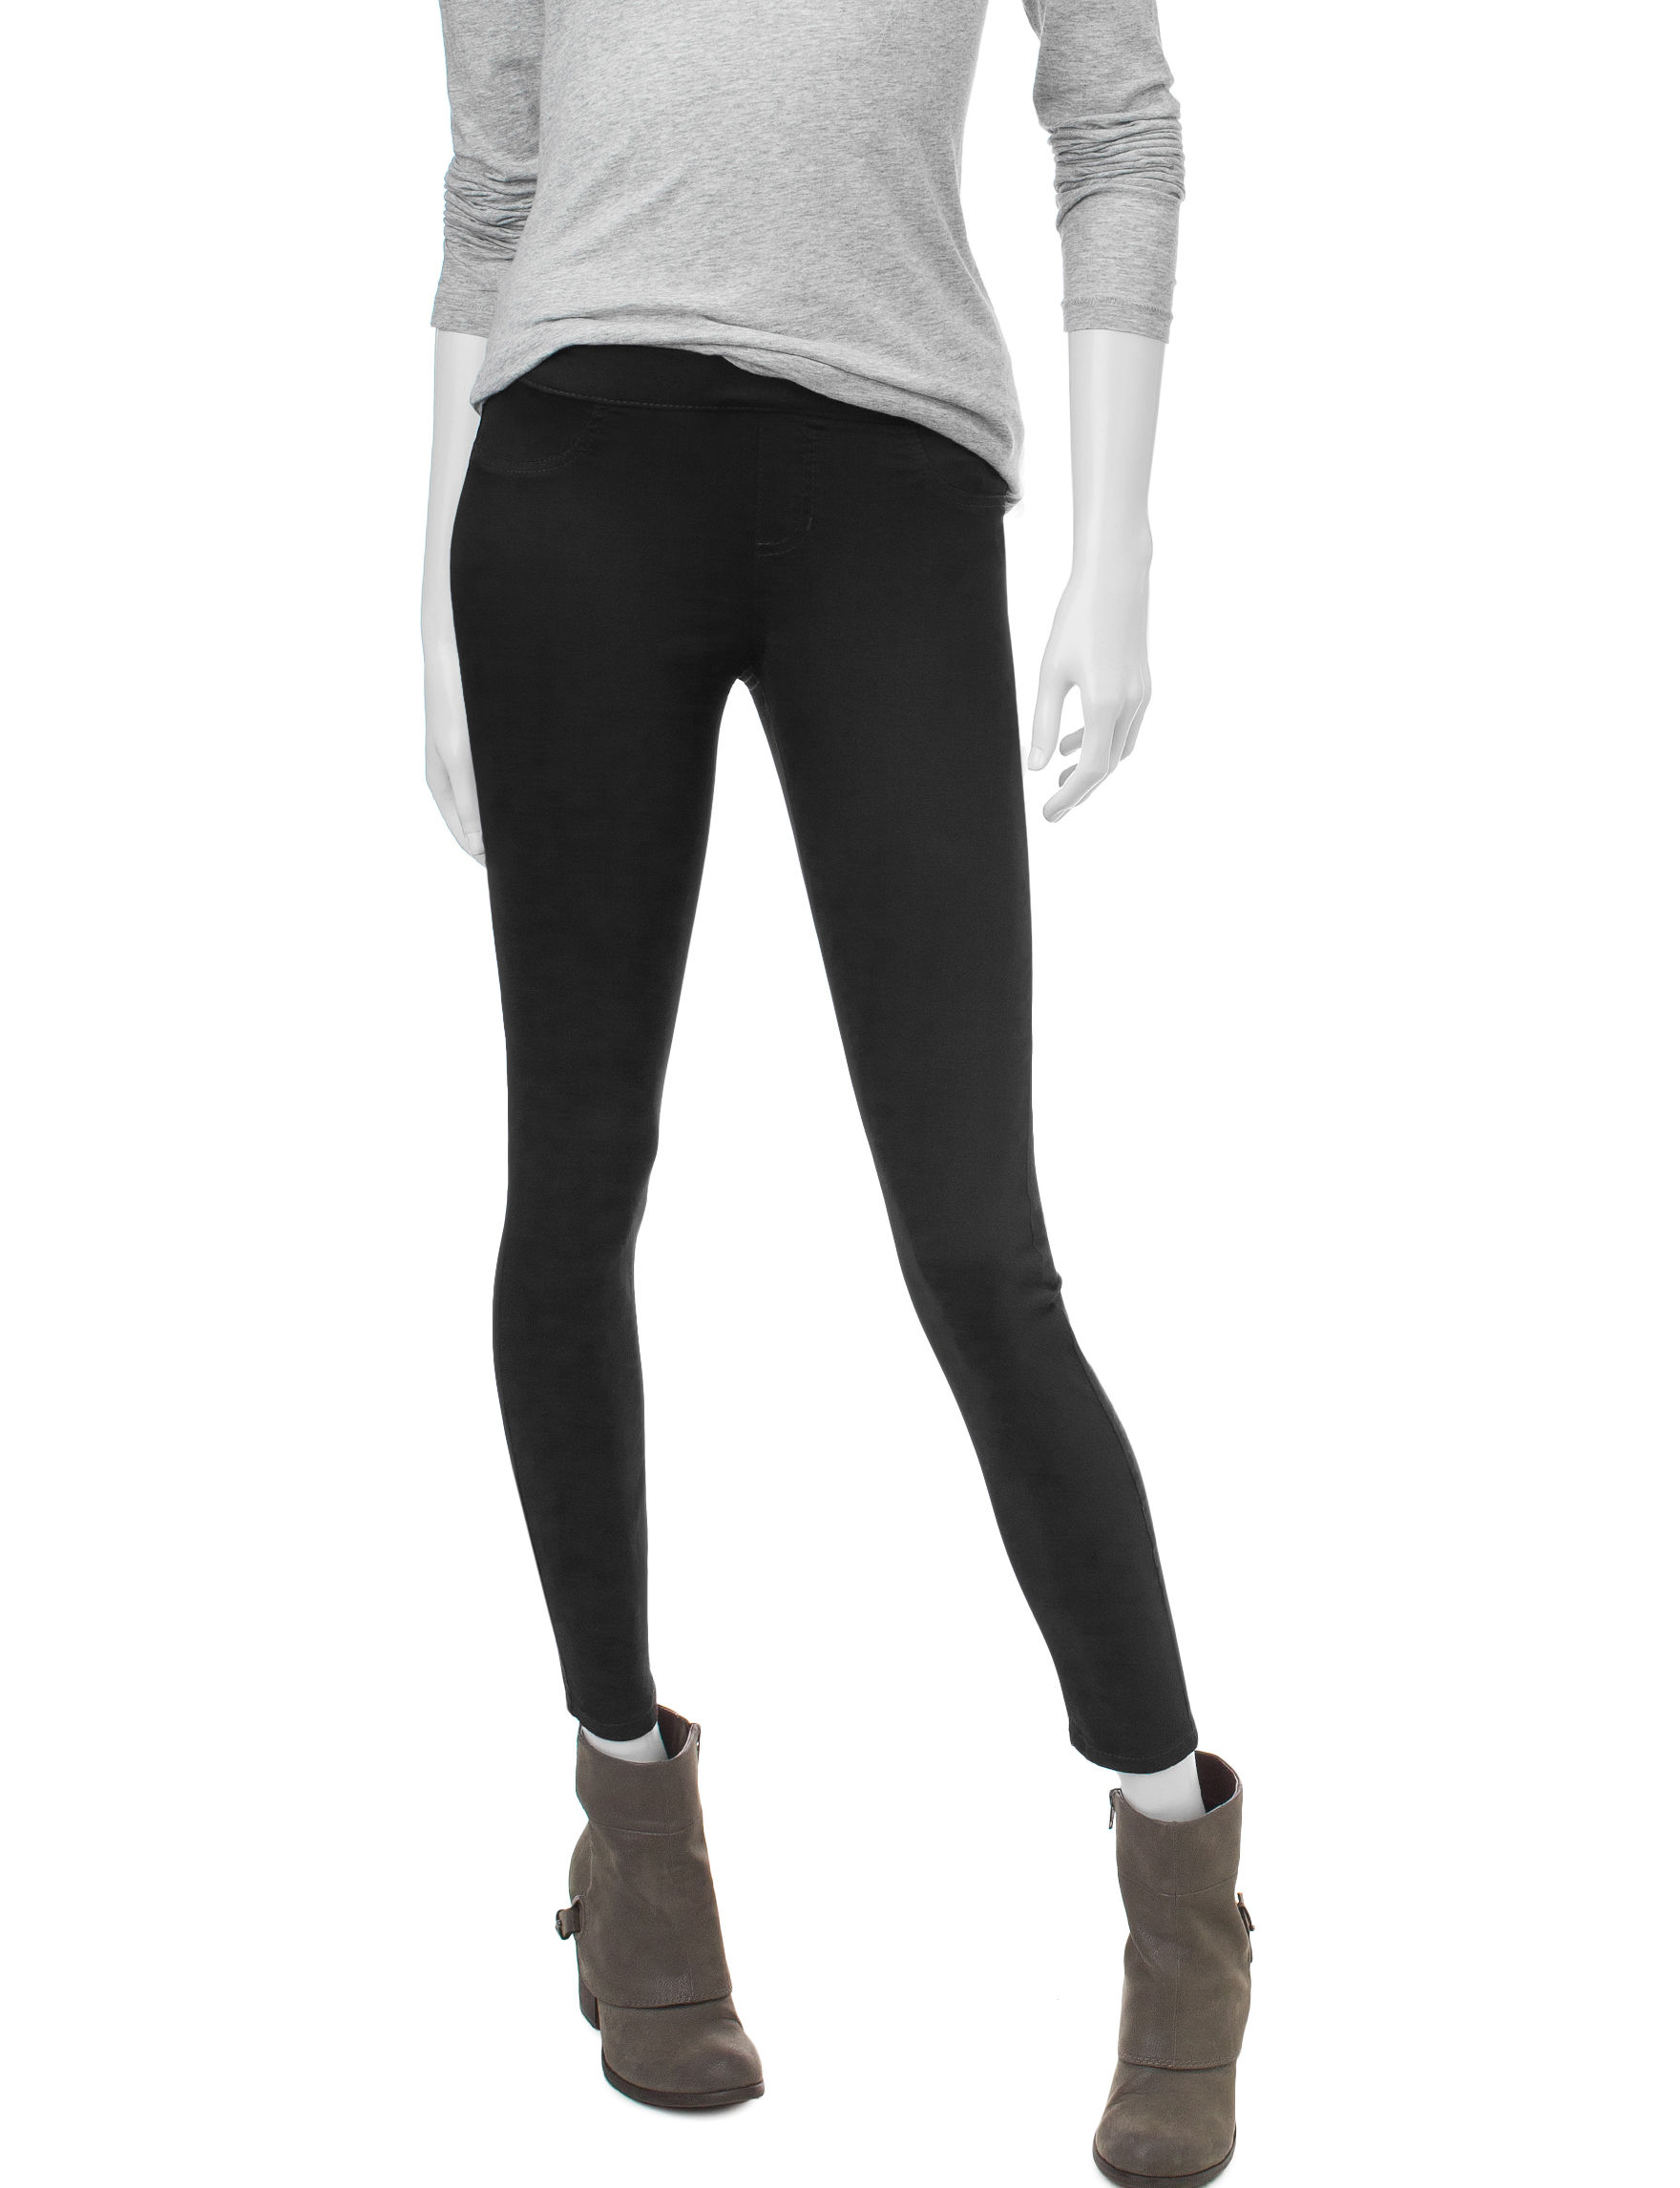 Wishful Park Black Skinny